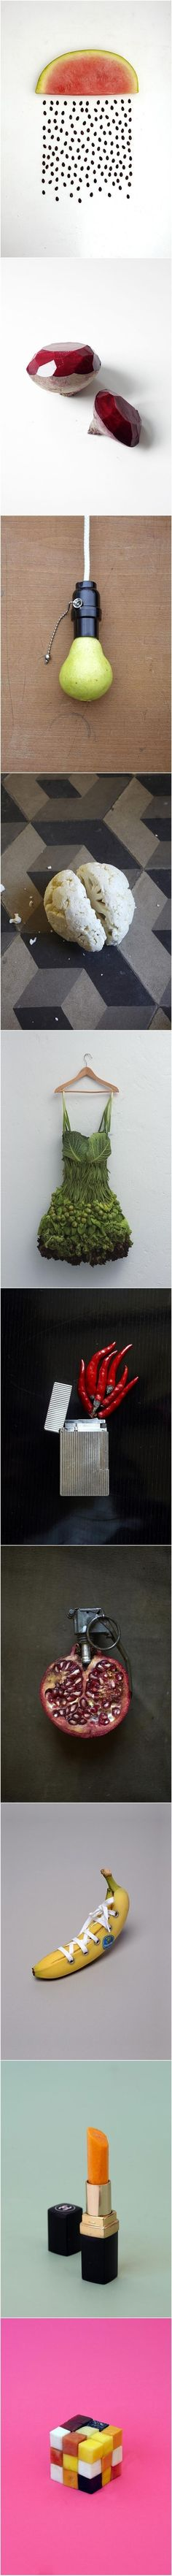 Creative food art // funny pictures - funny photos - funny images - funny pics - funny quotes - #lol #humor #funnypictures